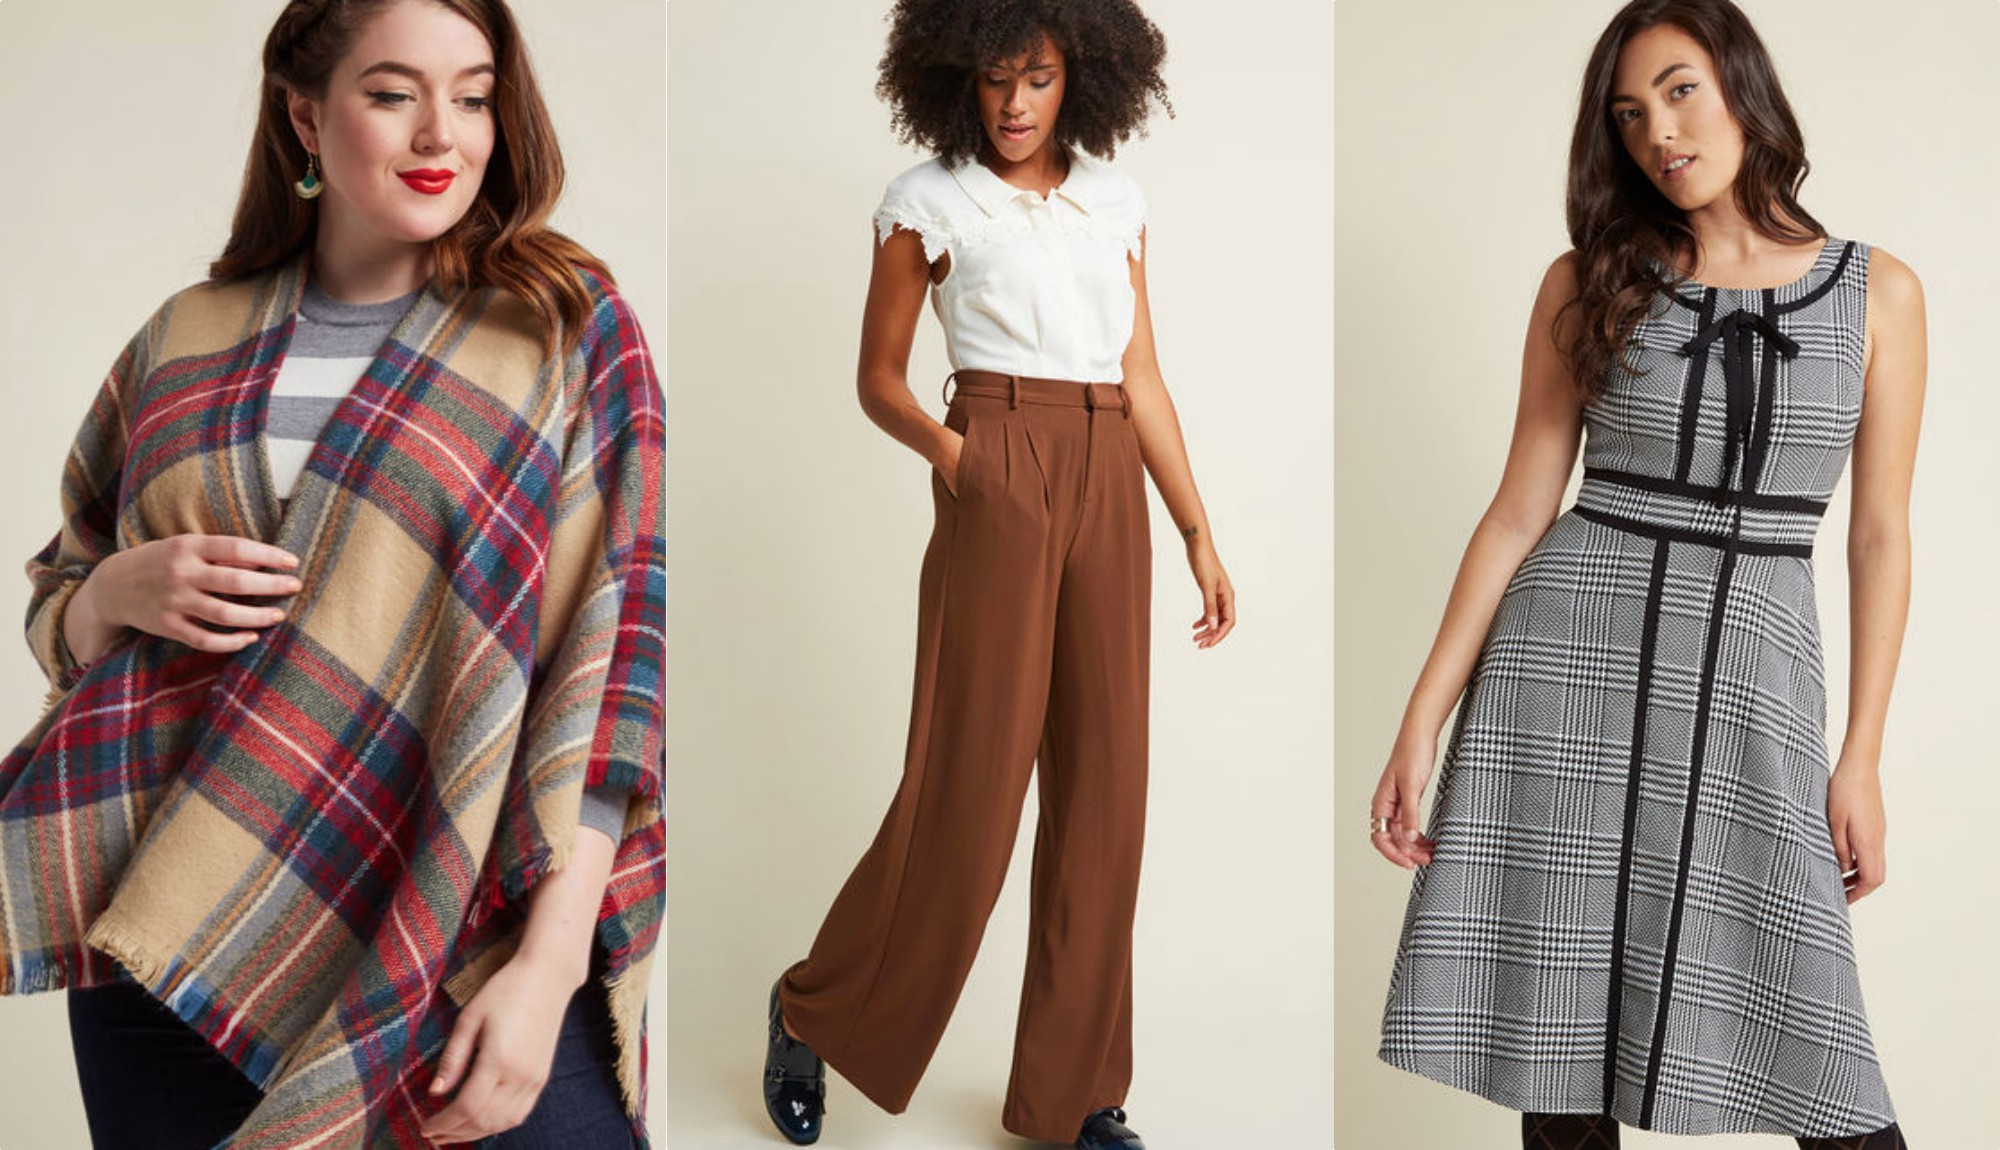 Don't sleep on Modcloth's epic after-Christmas sale